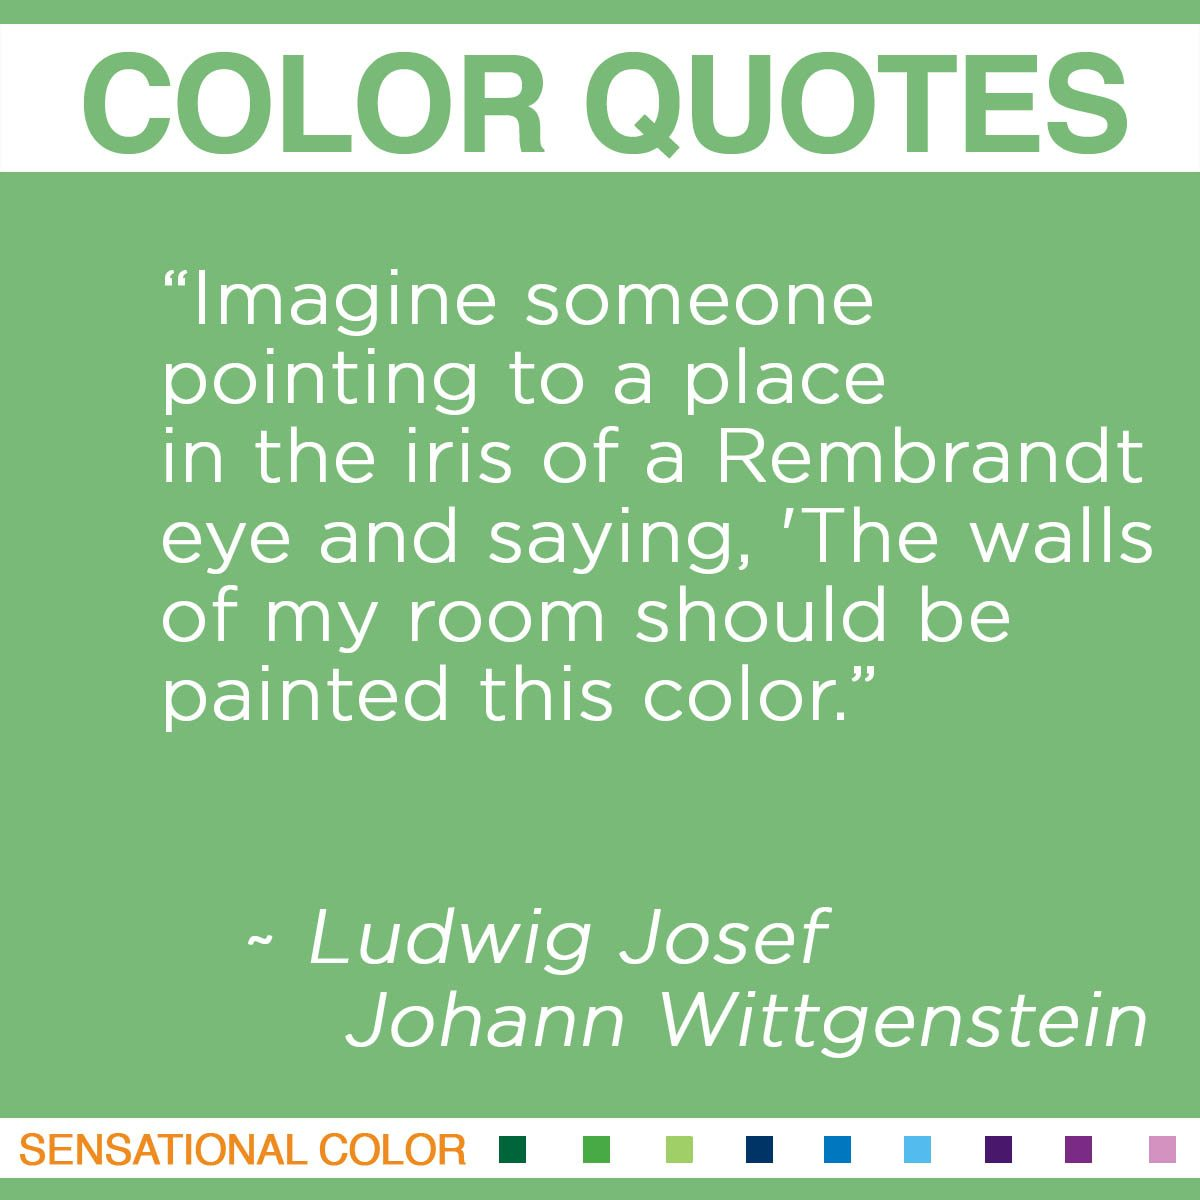 """Imagine someone pointing to a place in the iris of a Rembrandt eye and saying, 'The walls of my room should be painted this color."" - Ludwig Josef Johann Wittgenstein"